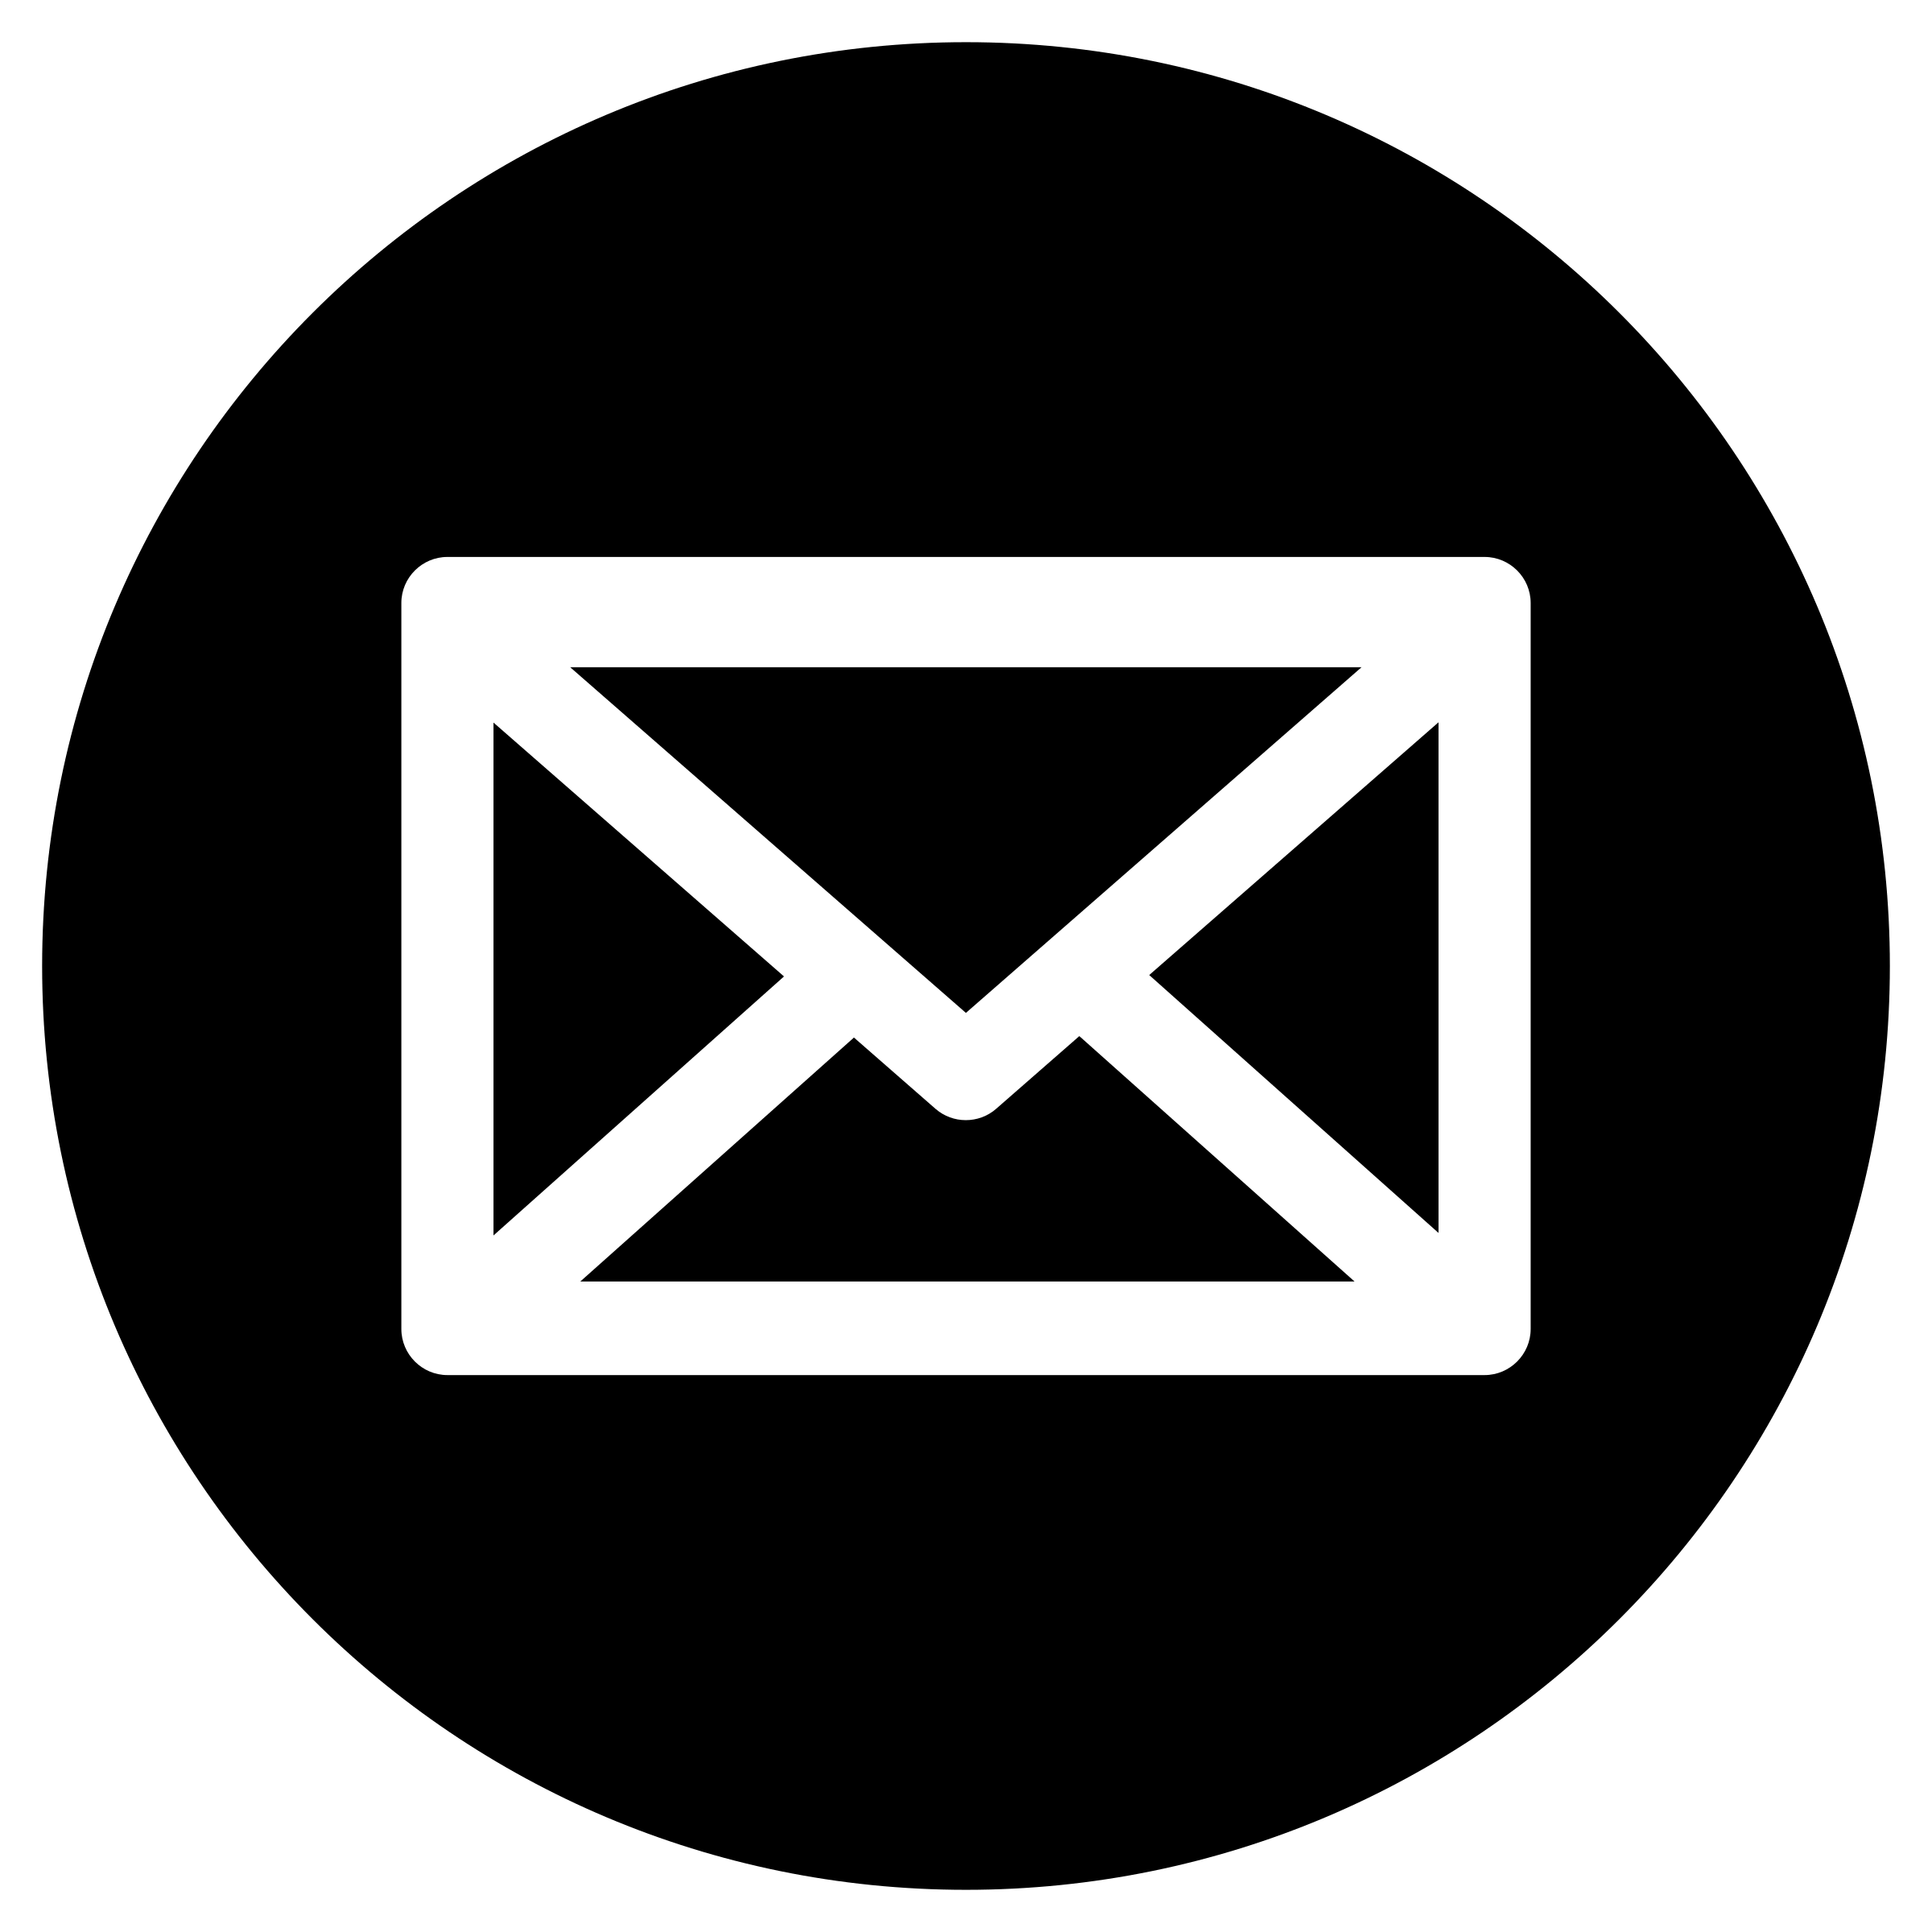 Black and White with Blue Circle Logo - Free Mail Icon Circle 96401 | Download Mail Icon Circle - 96401